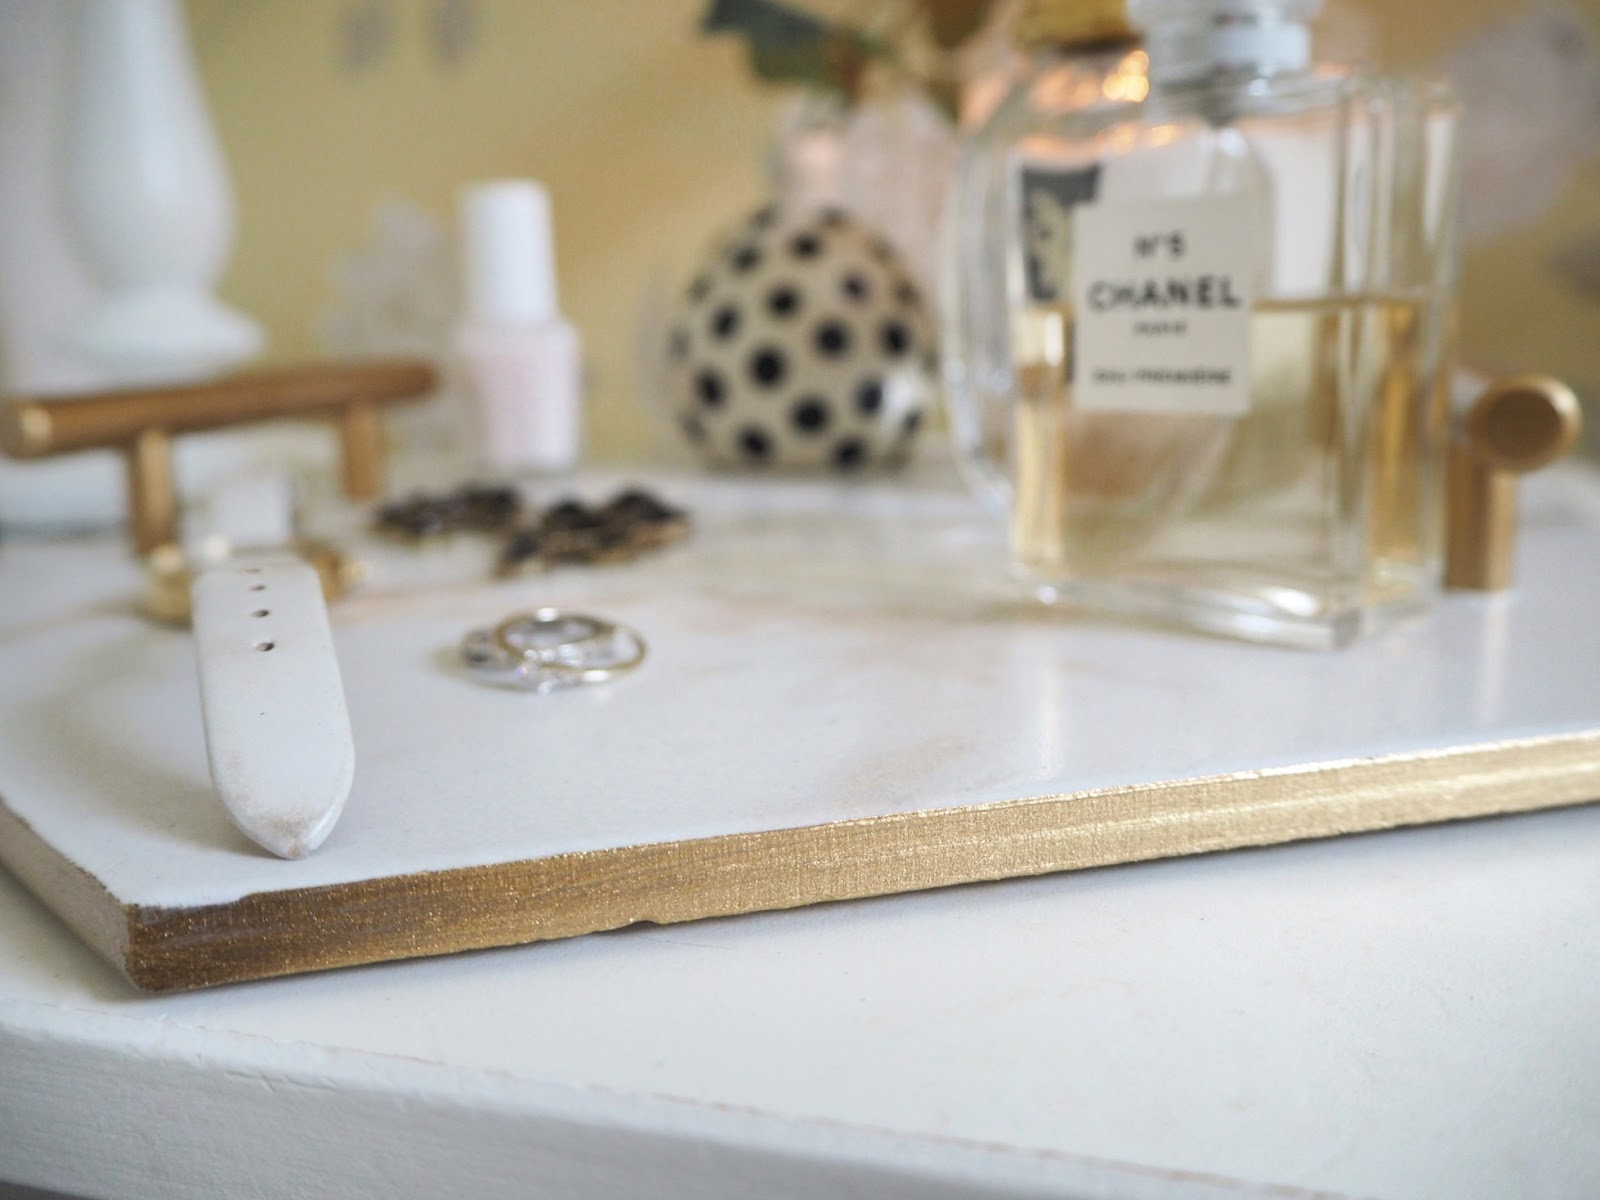 DIY marble effect tray made from a tile sample and brass handles. How to transform a tile sample into an expensive looking tray using spray paint and a single floor tile. Perfect decorative tray for your kitchen, bathroom or dressing table to display jewellery, make up or beauty essentials. Quick crafting DIY tutorial you can complete in a couple of hours.